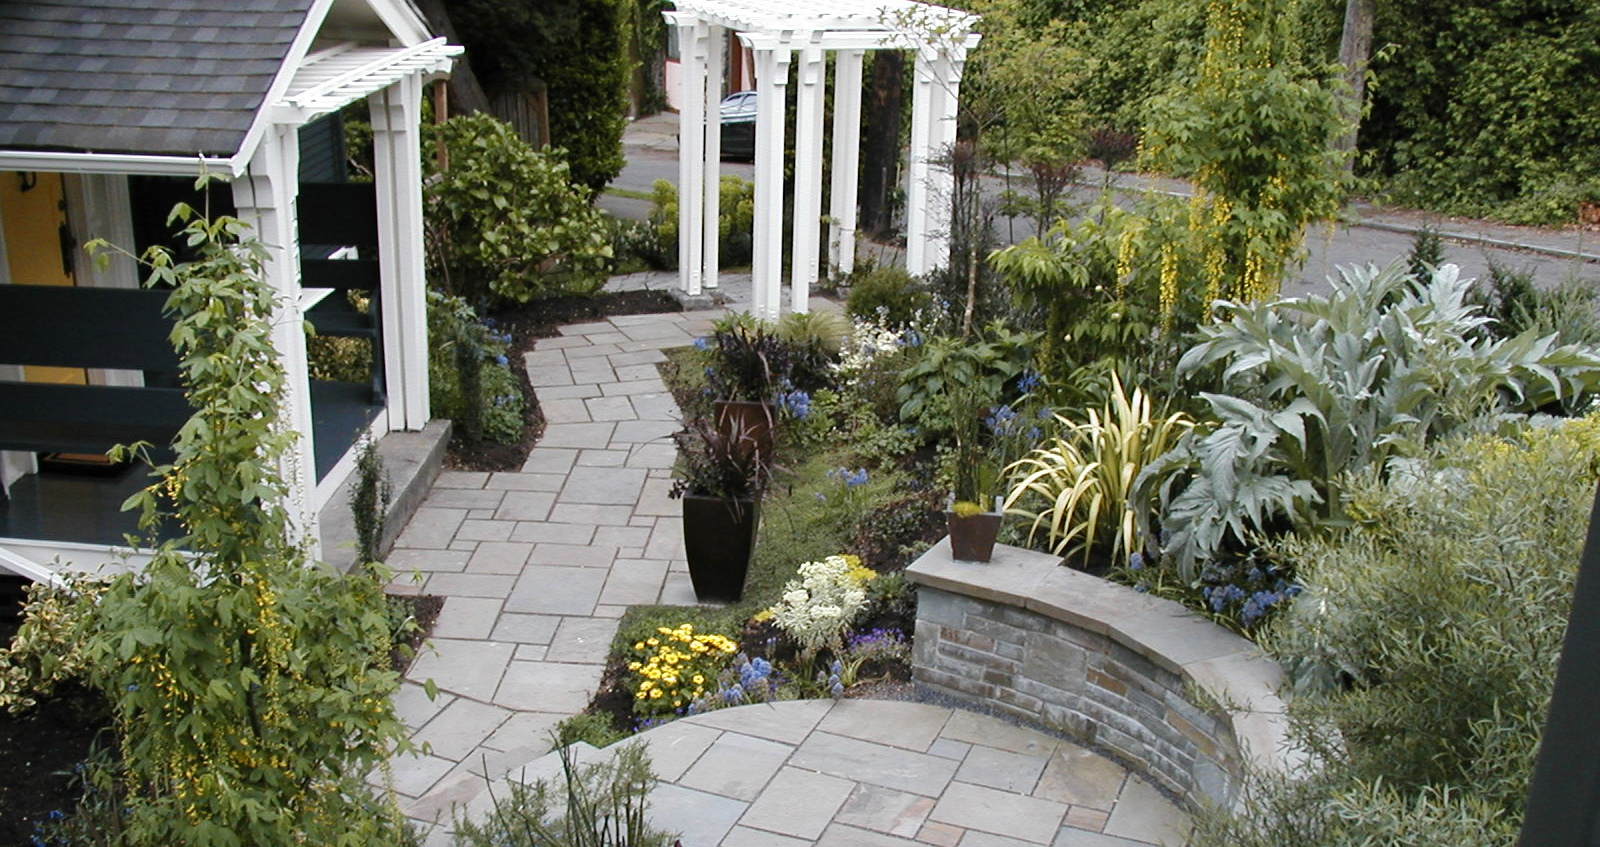 The beauty of the Arts-and-Crafts Garden